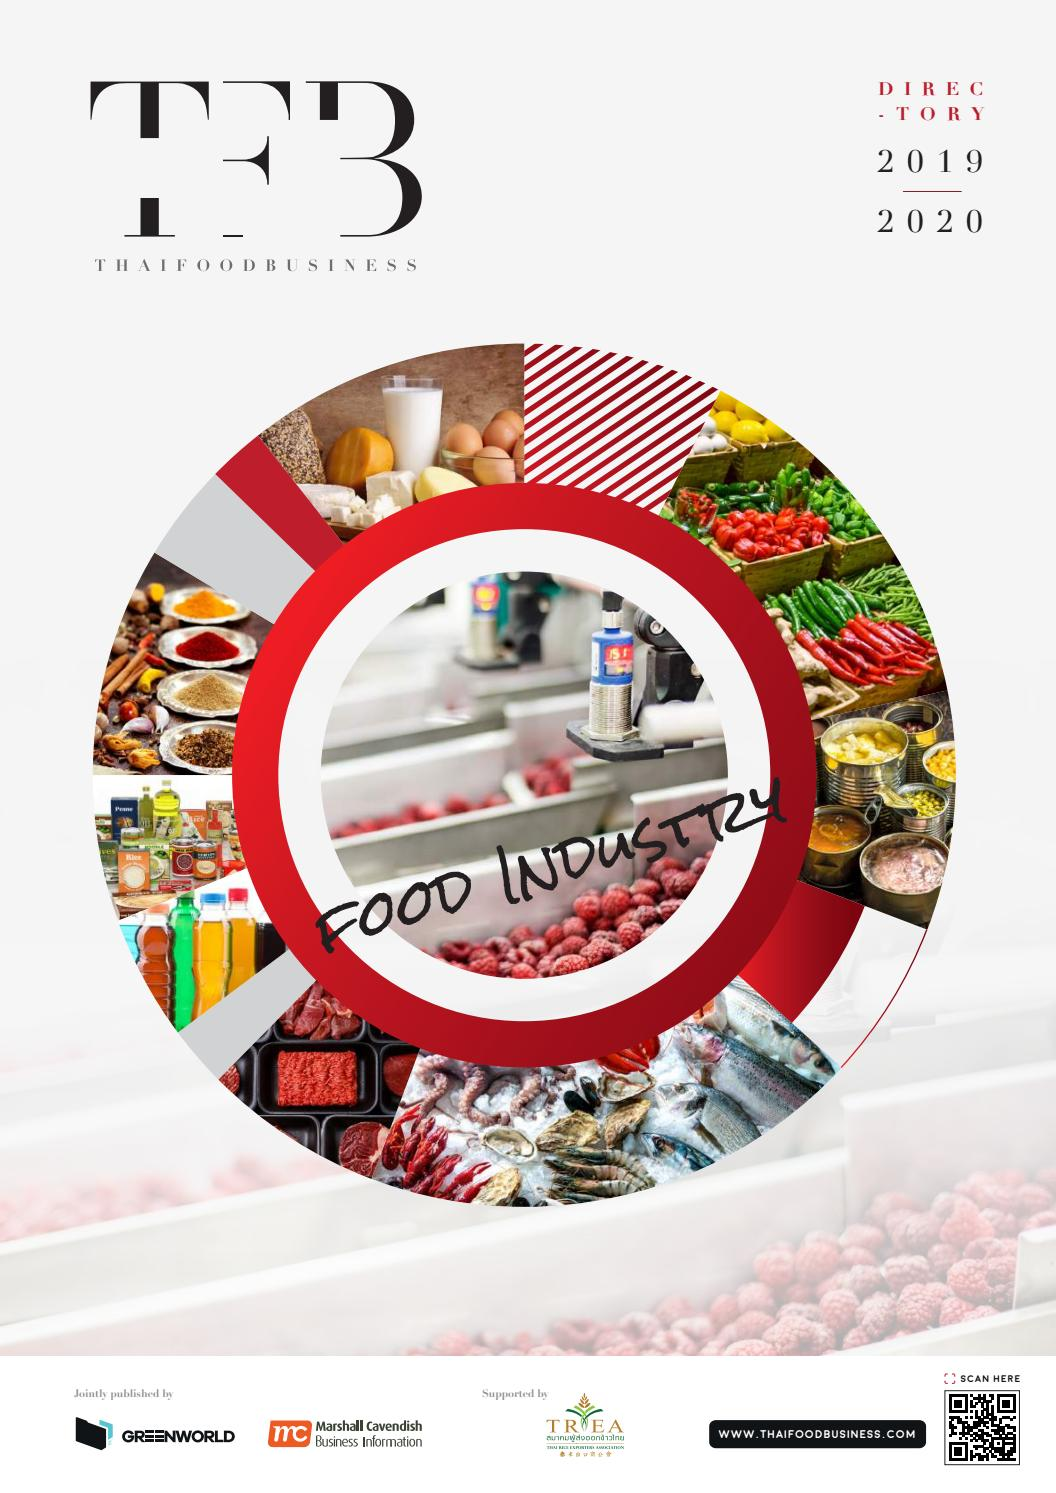 Thai Food Business Directory Issue 2019/2020 by Green World